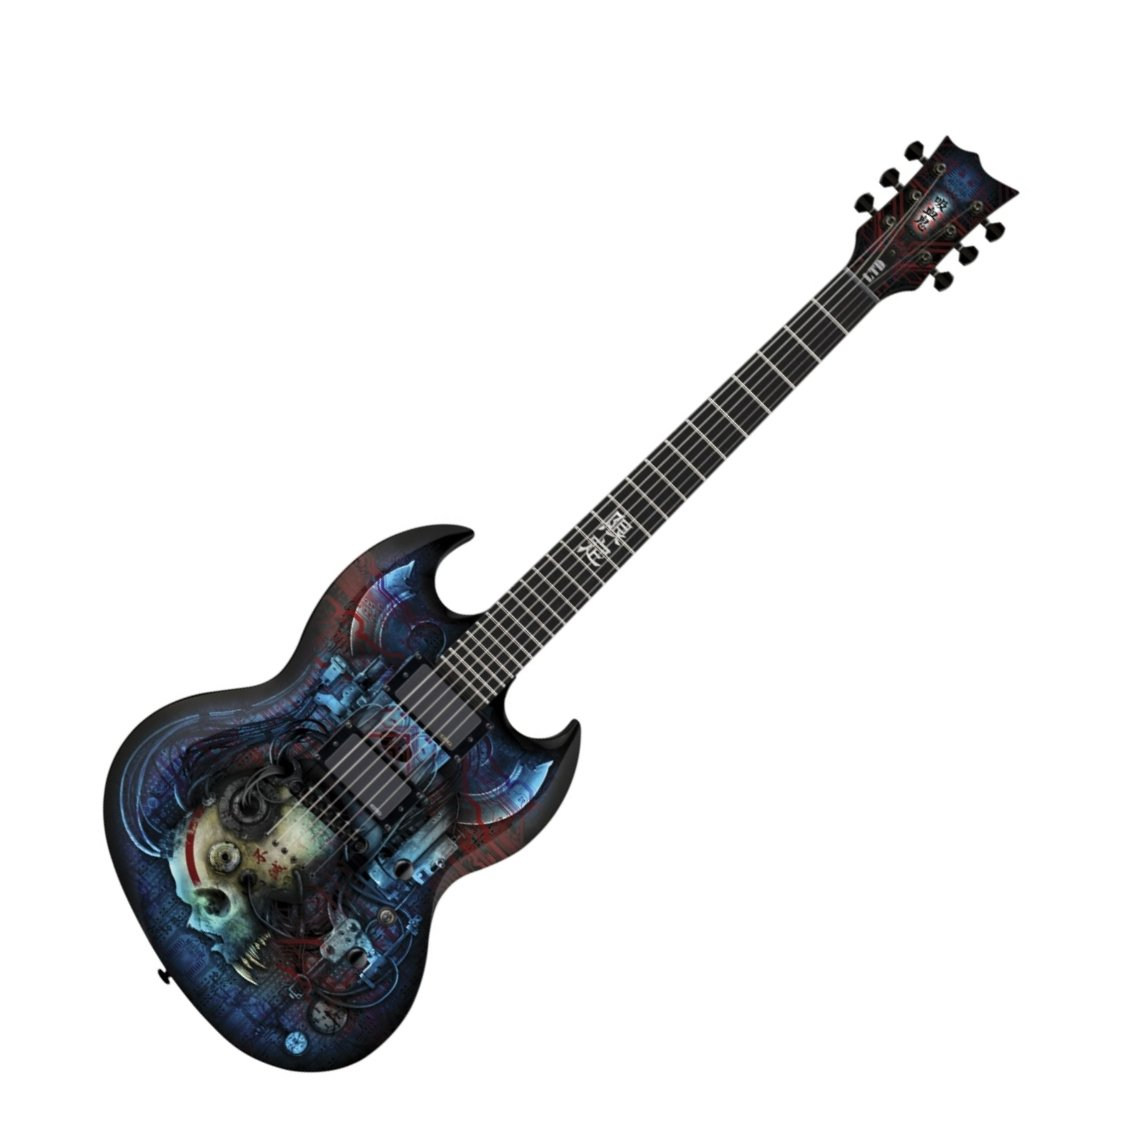 esp ltd viper vampire bio tech electric guitar graphic series with bio tech black finish esp14. Black Bedroom Furniture Sets. Home Design Ideas